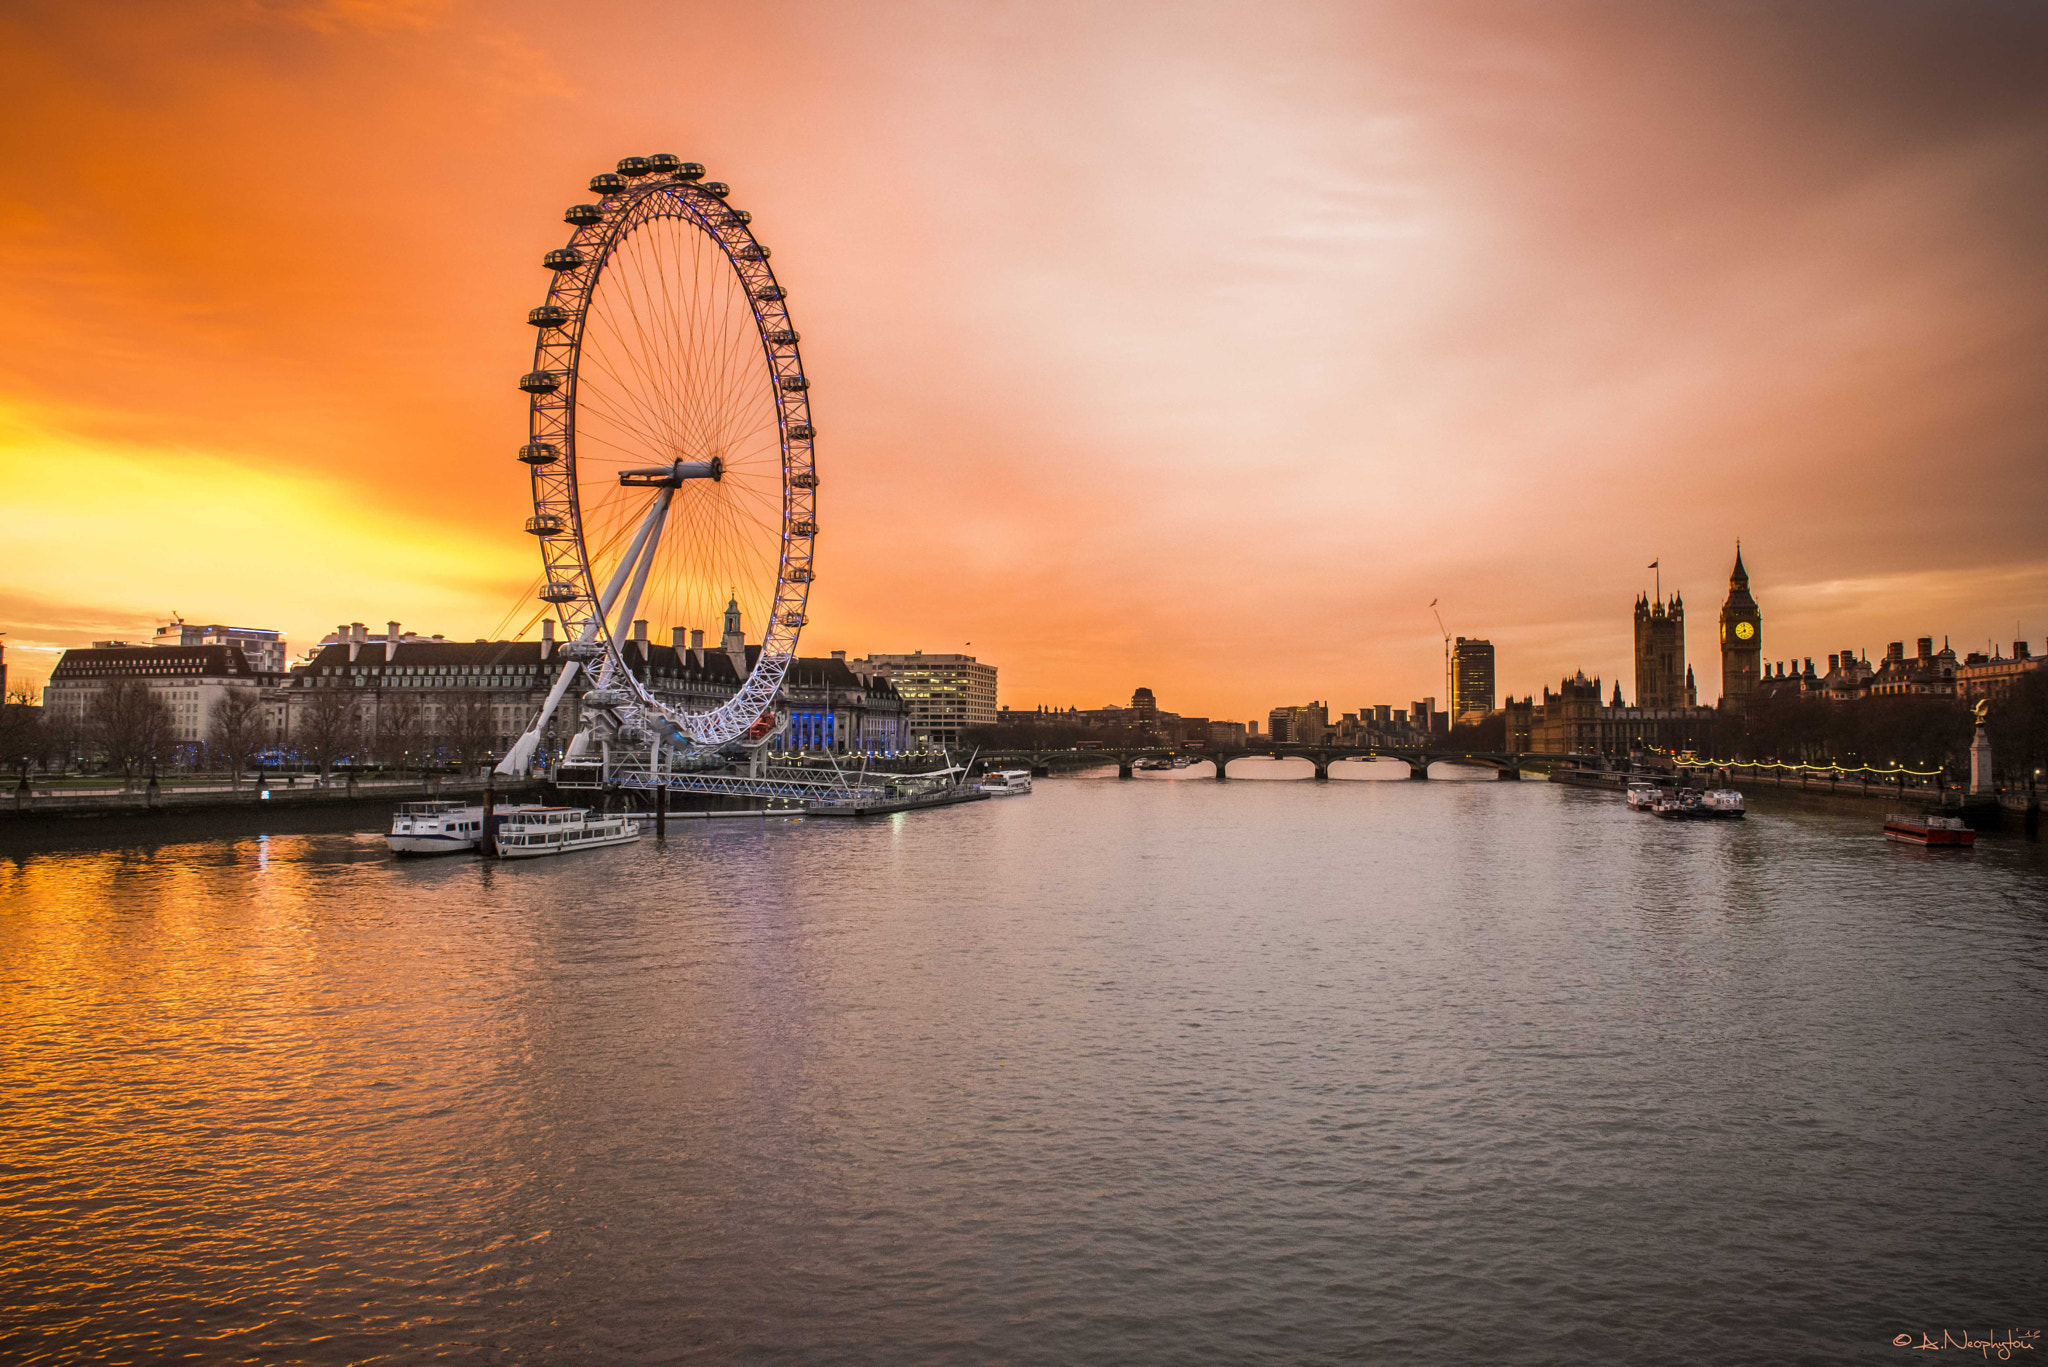 Photograph River Thames-Golden Hour by Andreas Neøphytøu on 500px